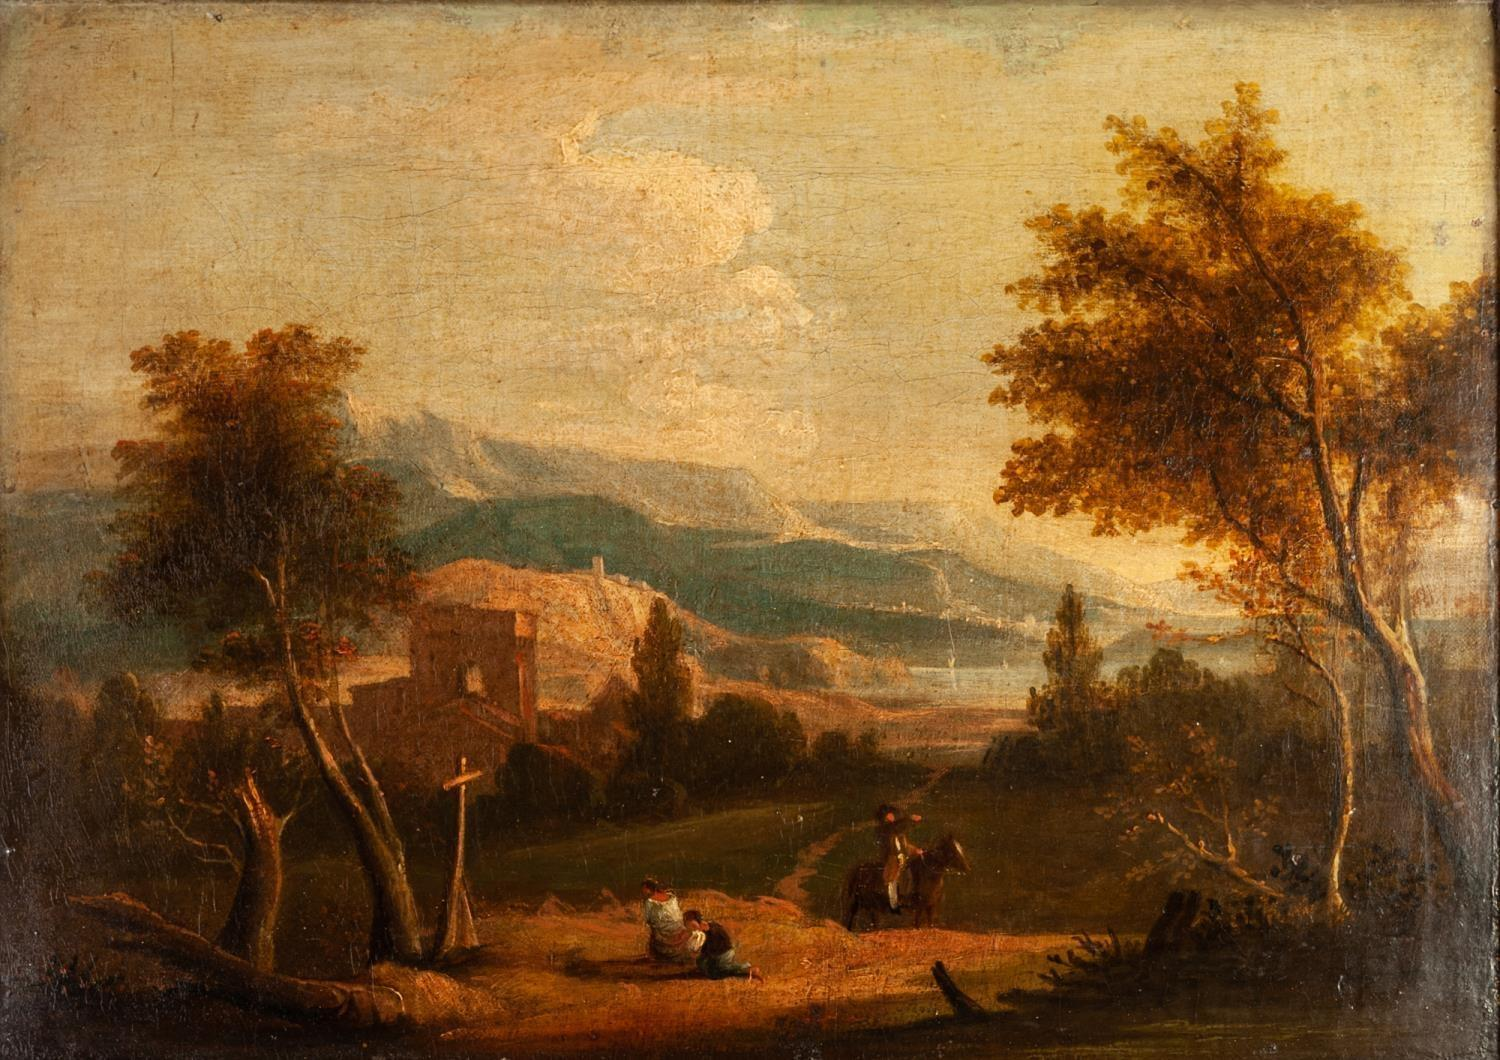 Lot 231 - CIRCLE OF RICHARD WILSON (1714 - 1782) OIL PAINTING ON RE-LINED CANVAS An Italianate landscape